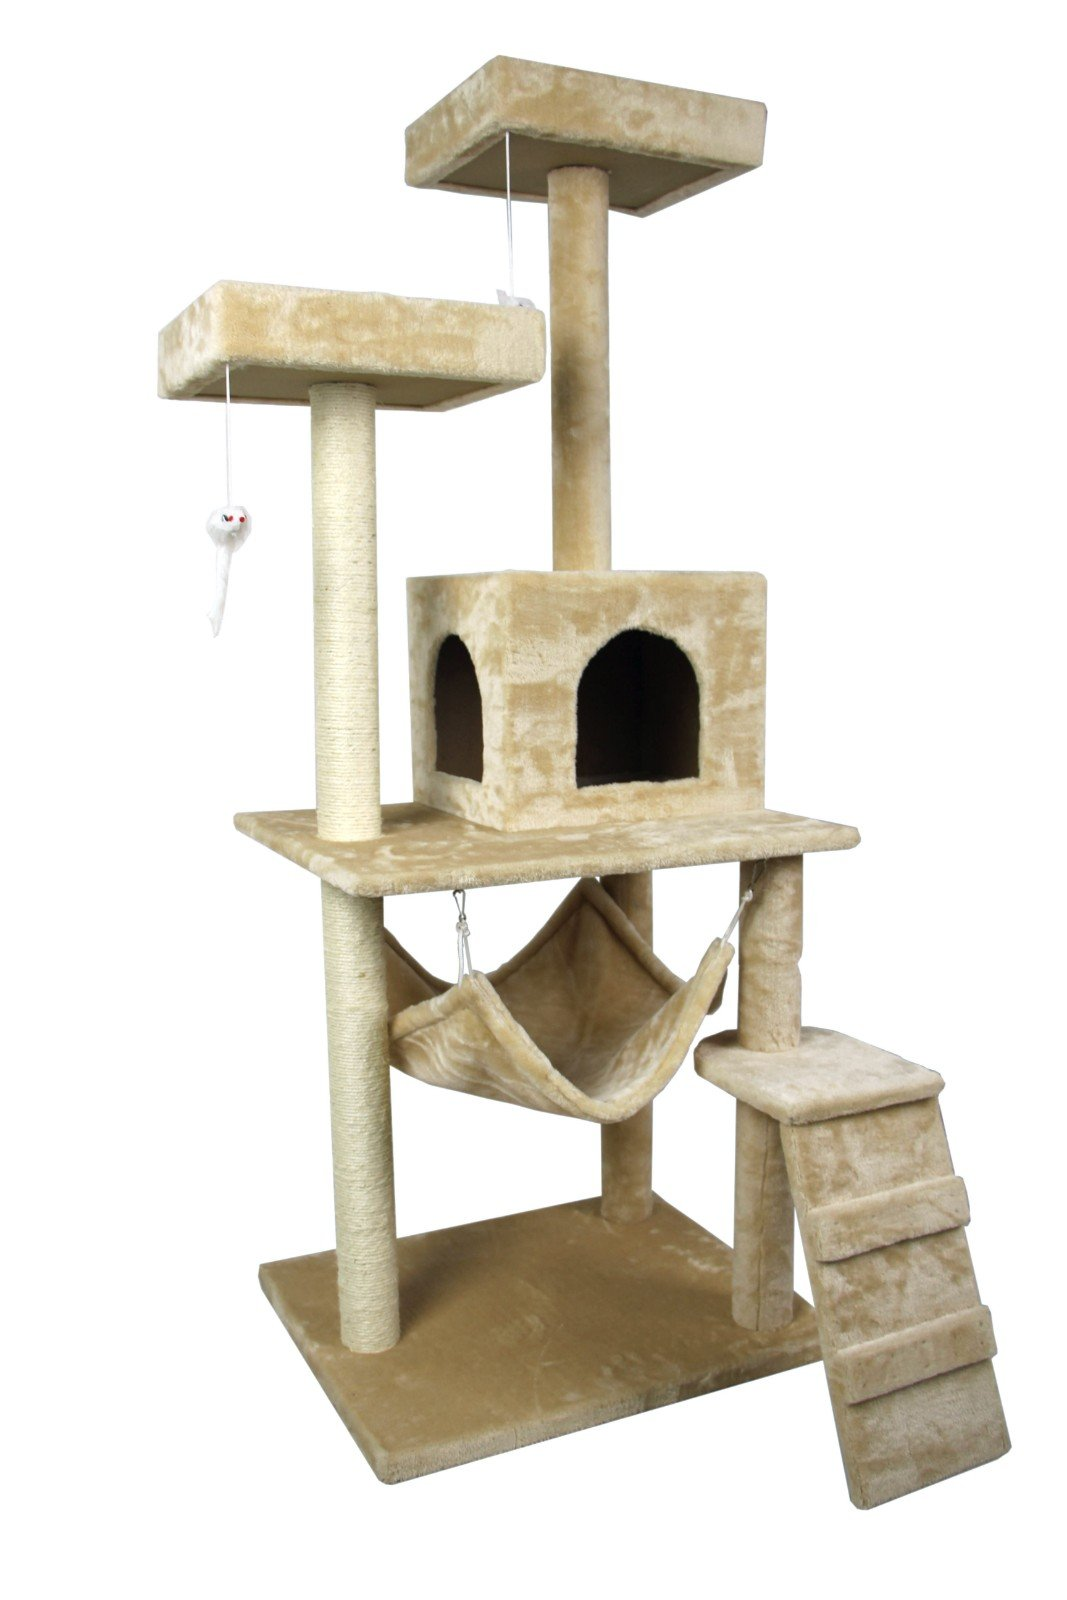 Hiding Nice Cat Tree Tower Condo Furniture Scratch Post Kitty Pet House Play Furniture Sisal Pole Stairs and Hammock, 29.92'' L, Beige by Hiding (Image #5)